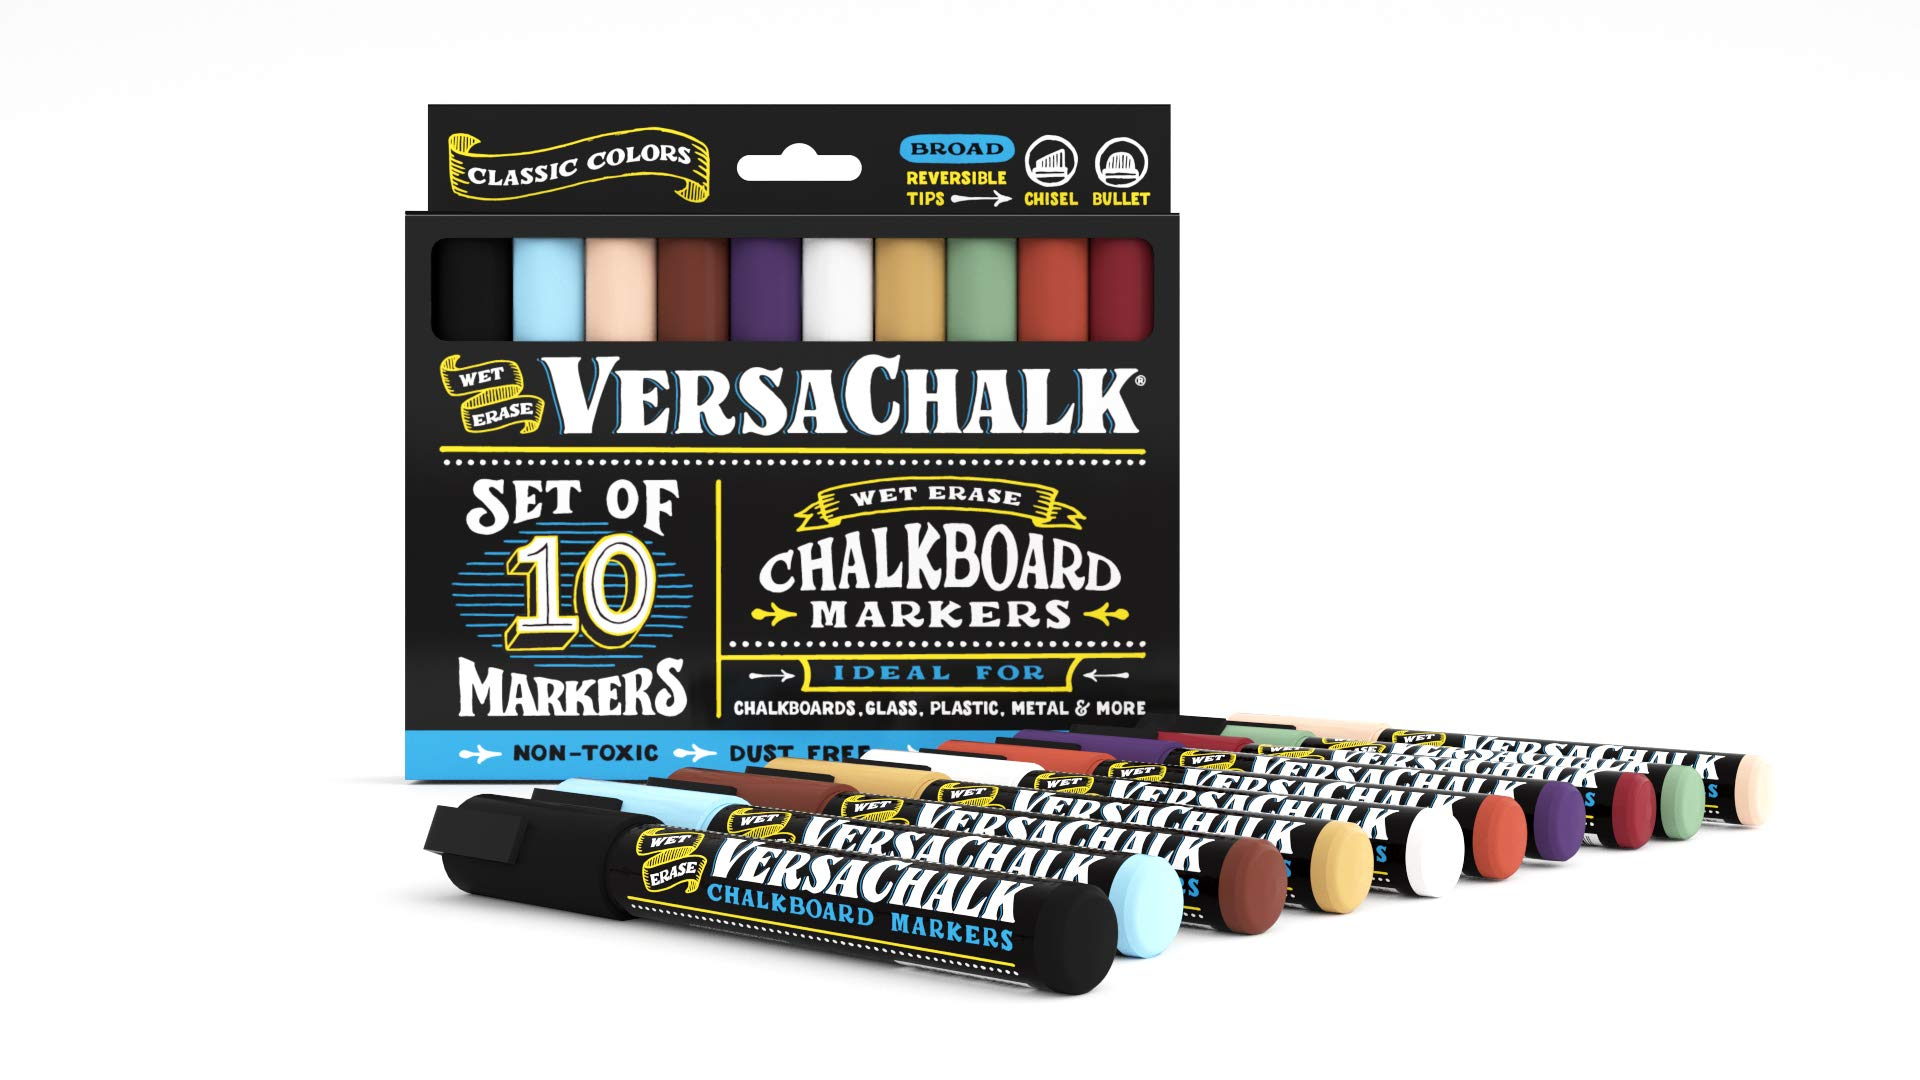 Chalkboard Chalk Markers by VersaChalk - Classic Colors (10-Pack)   Dust Free, Water-Based, Non-Toxic   Wet Erase Chalk Ink Pens by VersaChalk (Image #2)